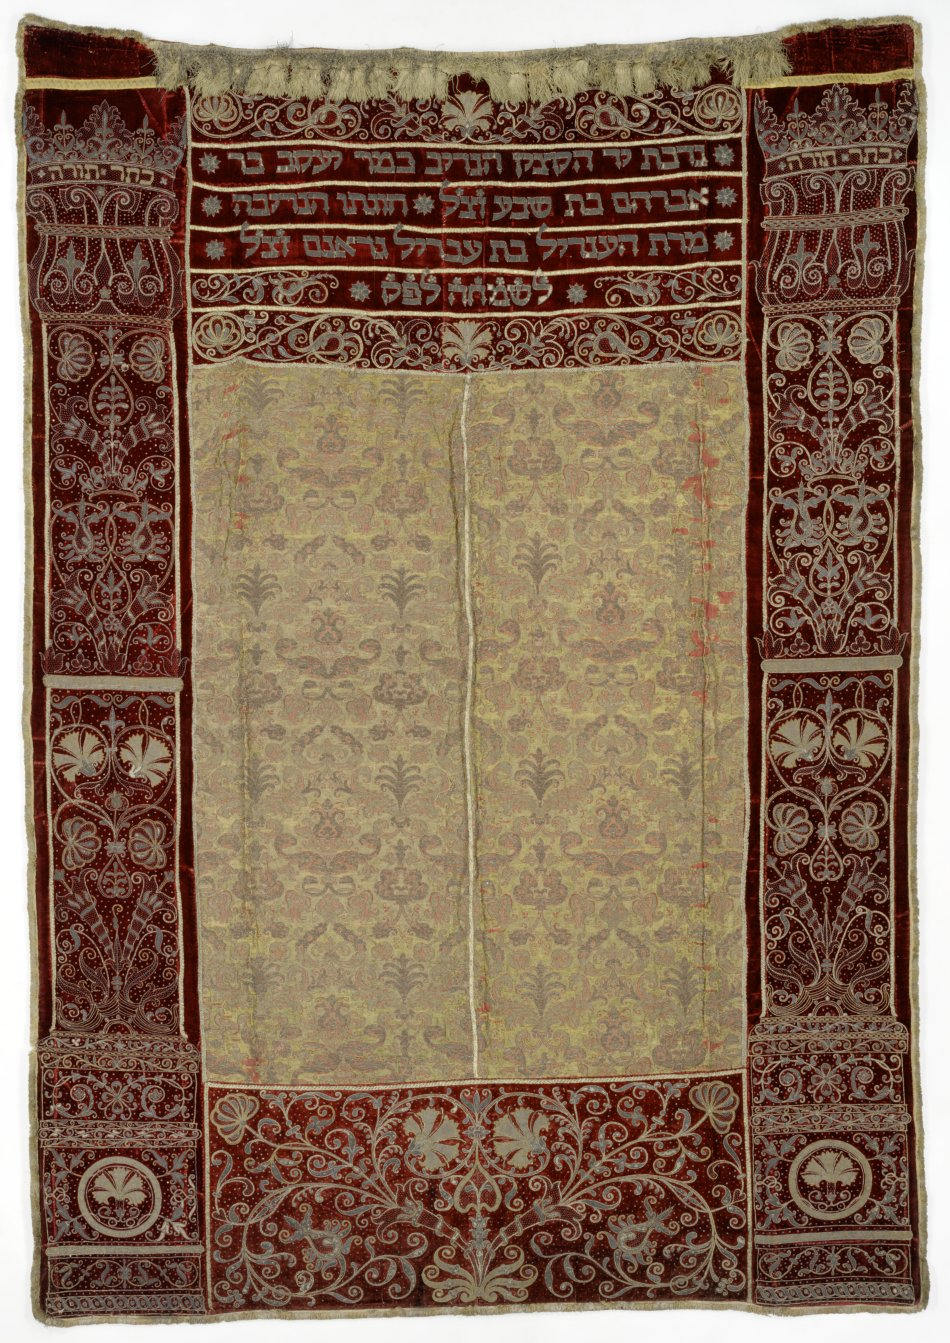 Torah curtain of Jacob Bassevi